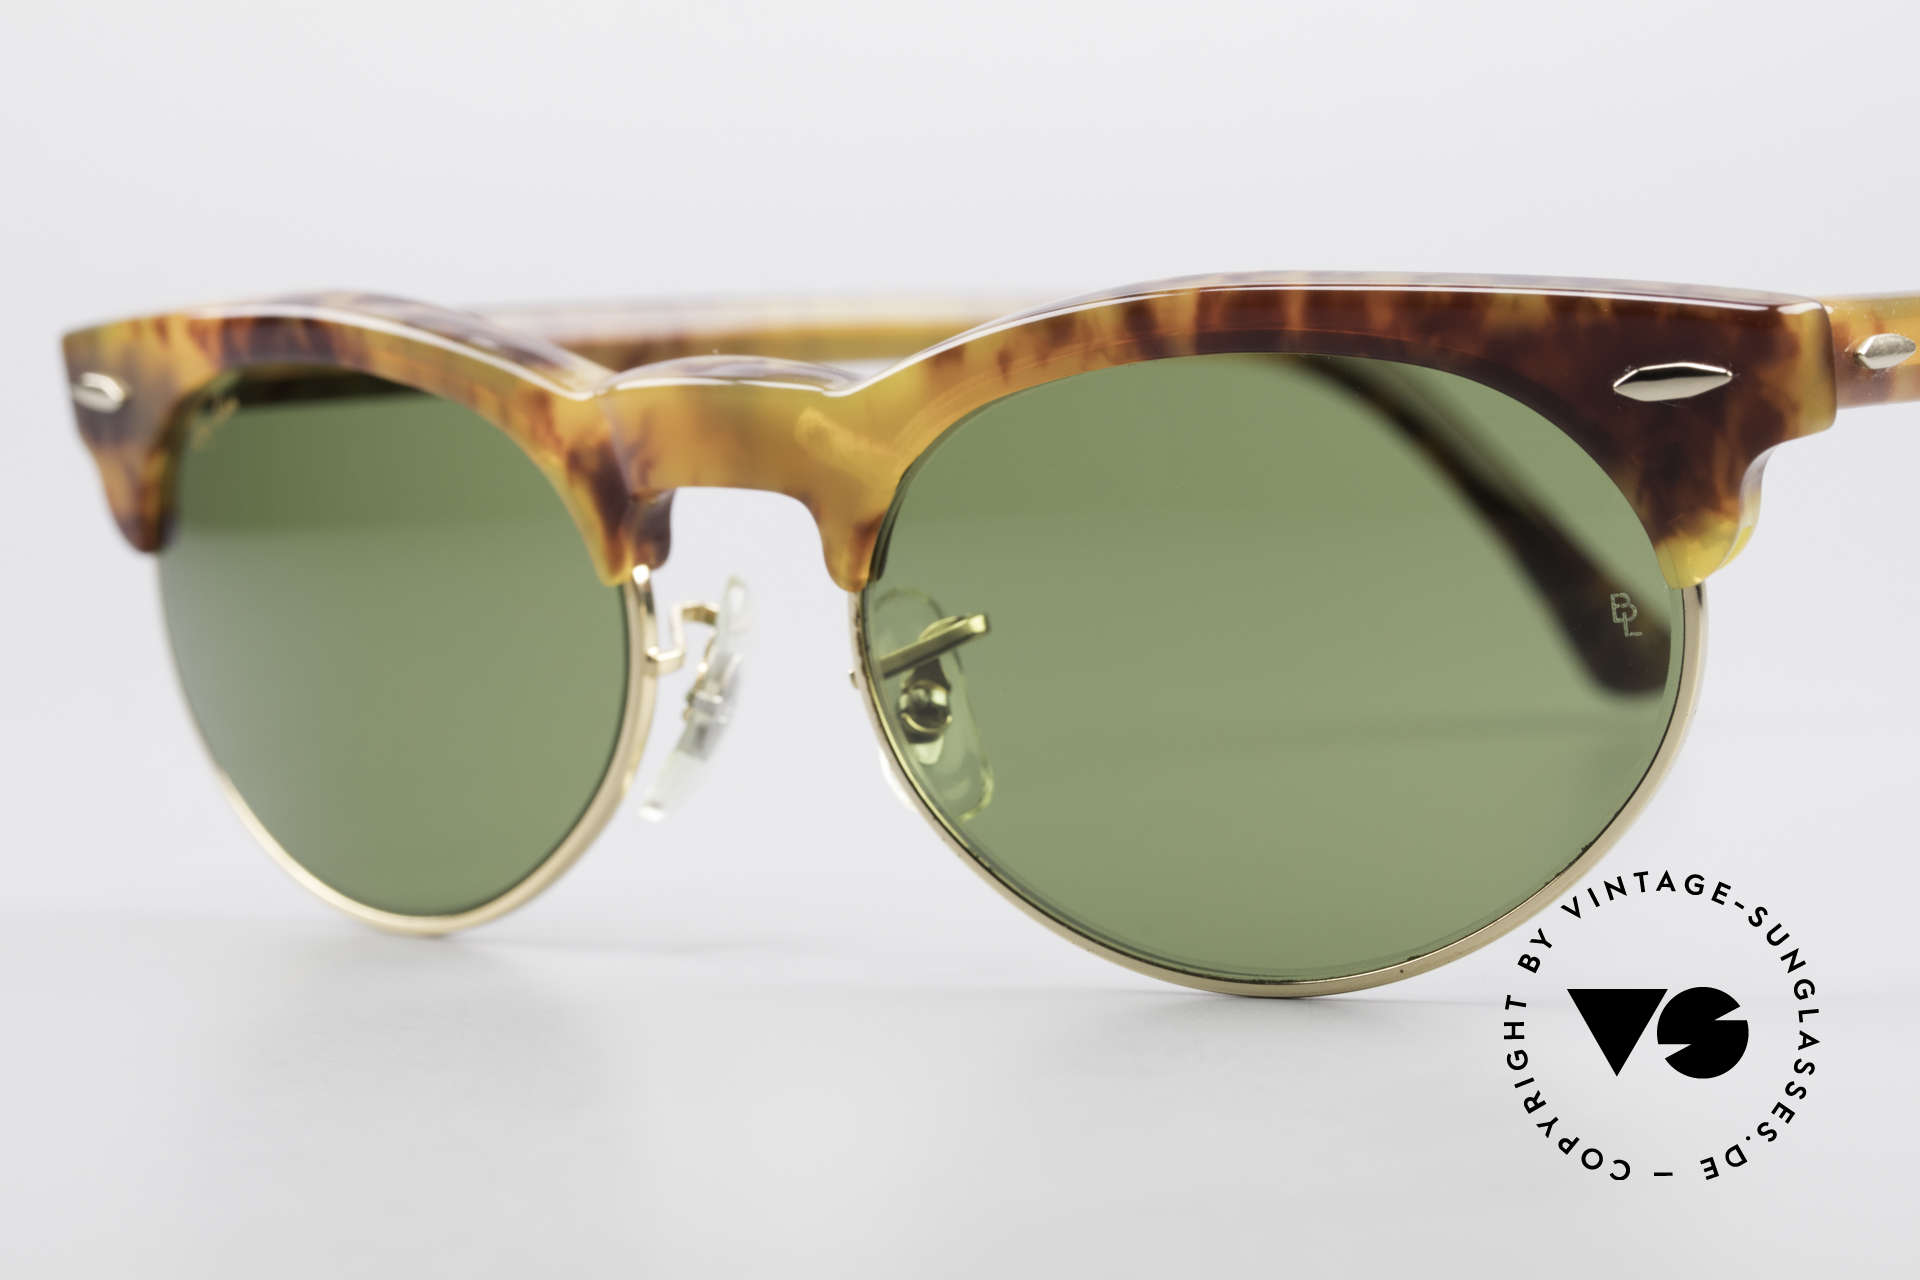 Ray Ban Oval Max 80's Bausch & Lomb Original, never worn (like all our vintage Ray Ban eyewear), Made for Men and Women